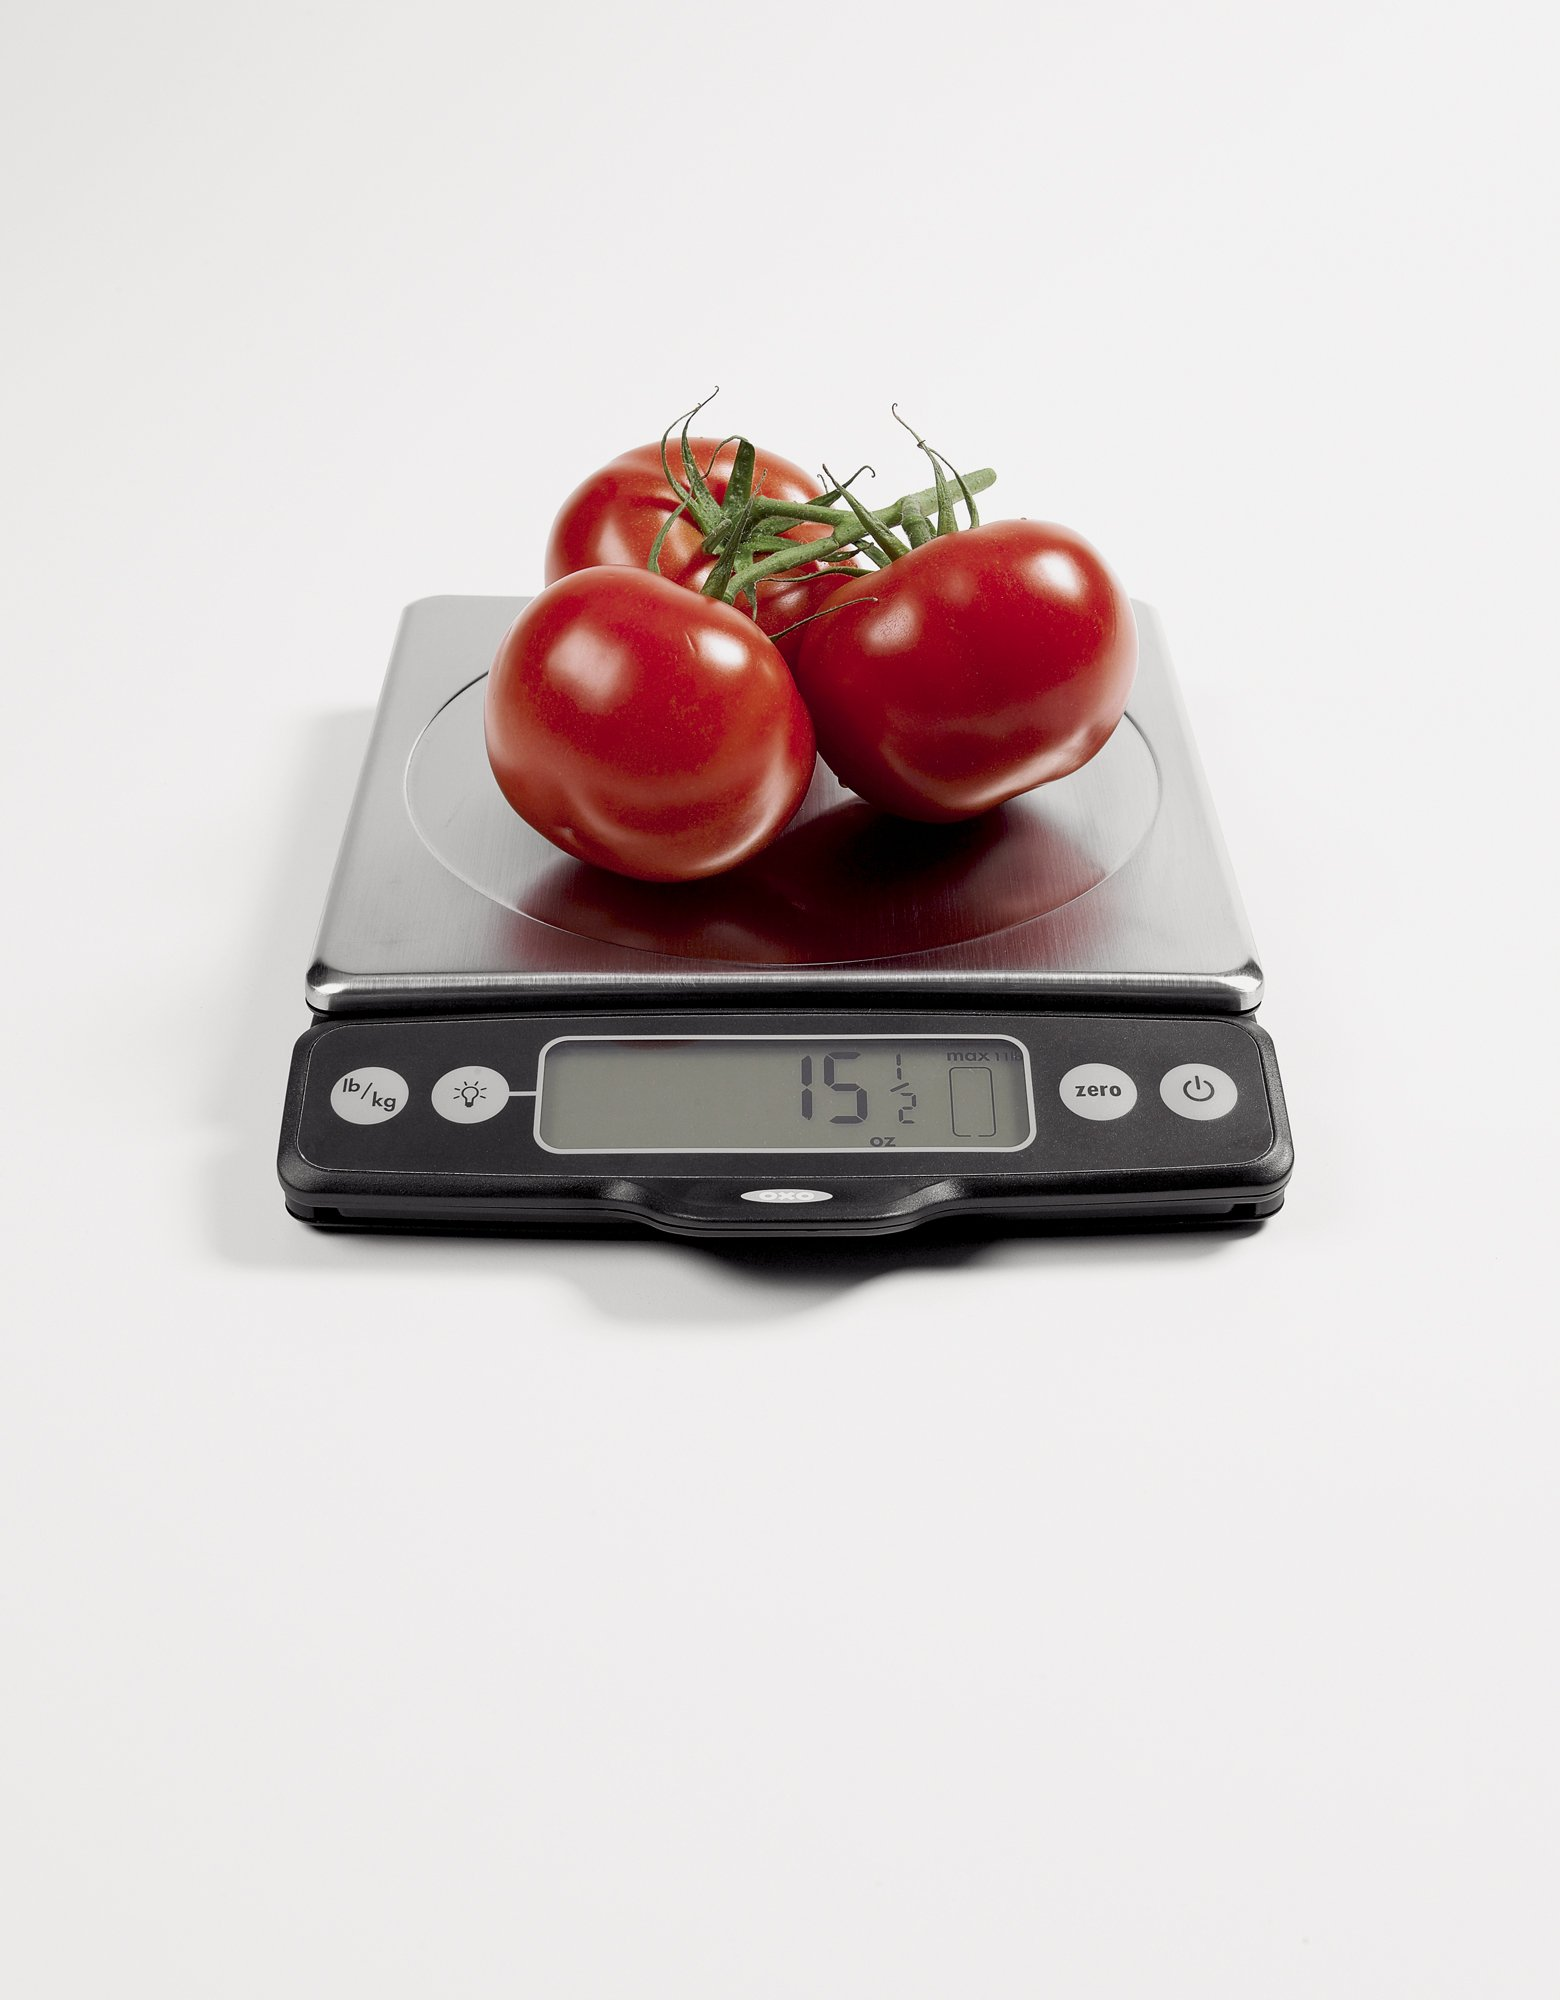 OXO Good Grips Stainless Steel Food Scale with Pull-Out Display, 11-Pound NEWER VERSION AVAILABLE by OXO (Image #2)